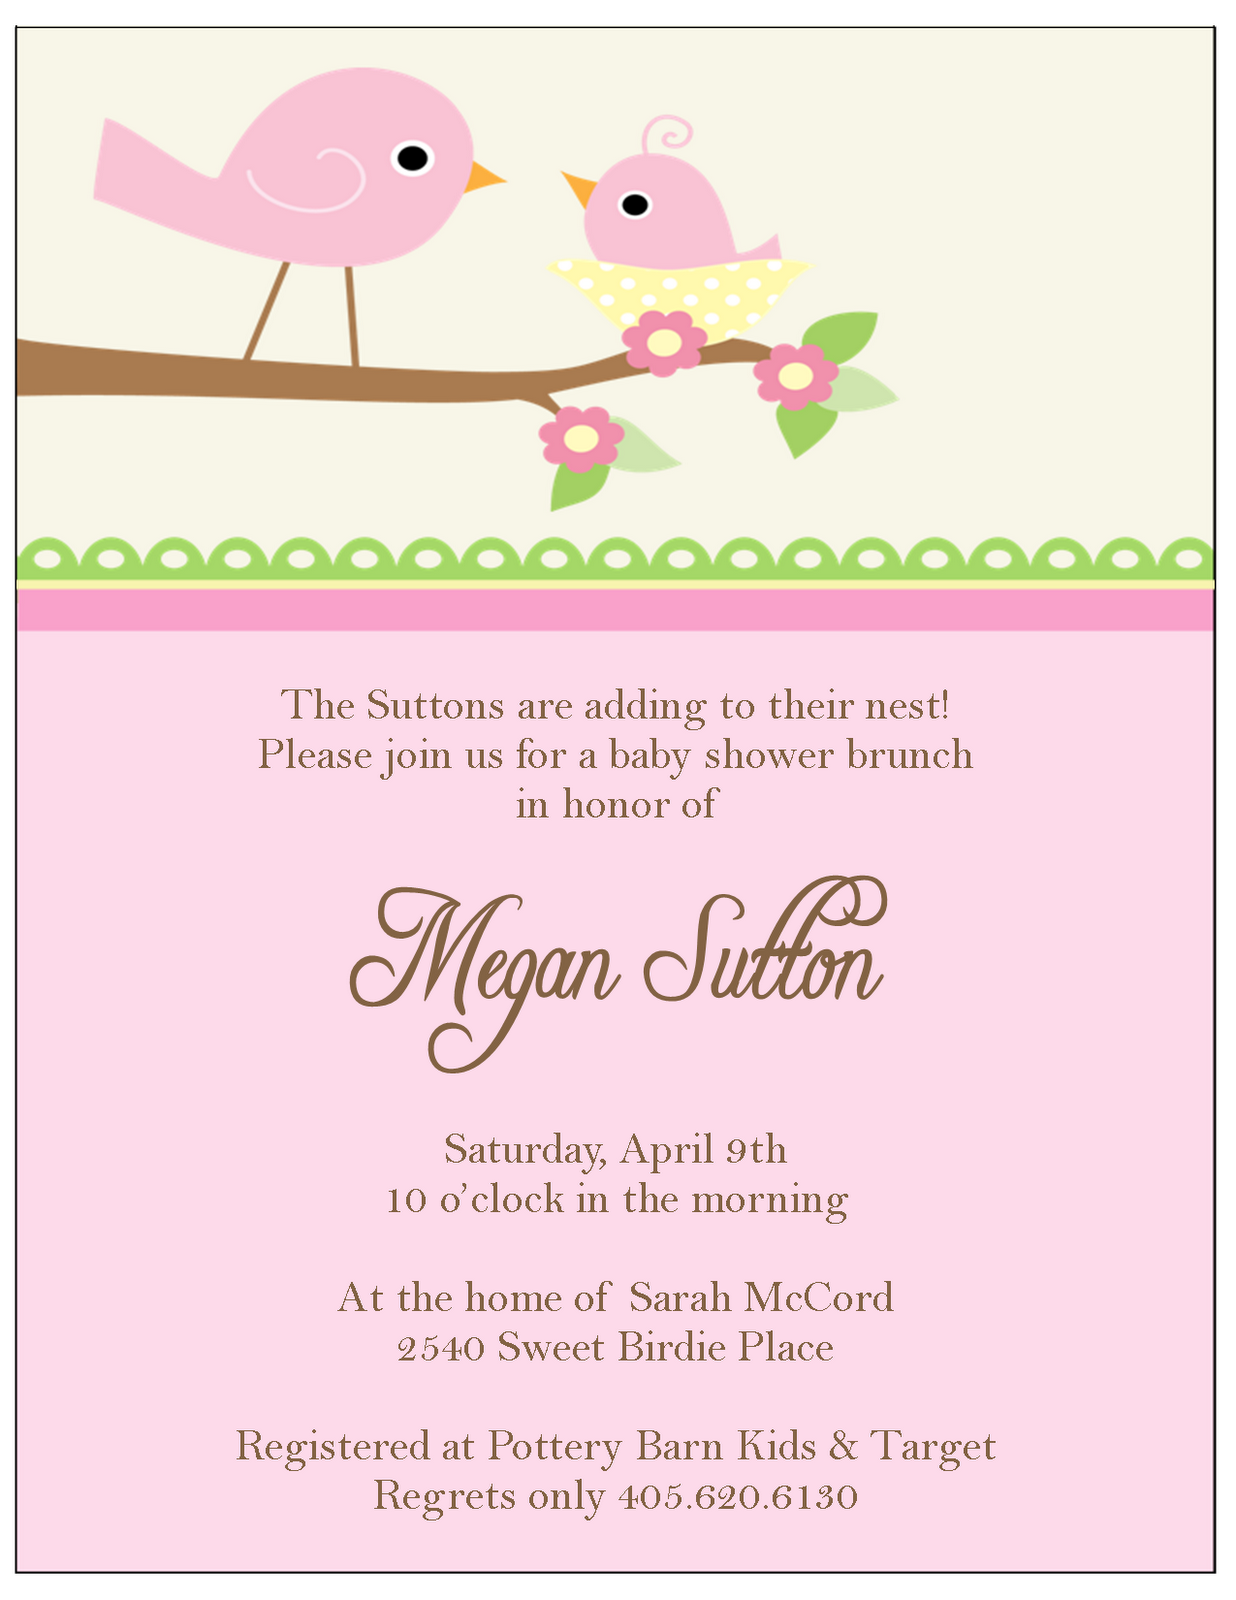 Full Size of Baby Shower:63+ Delightful Cheap Baby Shower Invitations Image Inspirations Cheap Baby Shower Invitations Baby Shower Accessories Baby Shower Host Save The Date Baby Shower Baby Shower Paper Full Size Of Colorsbaby Shower Invites For Stylish Baby Shower For Cake